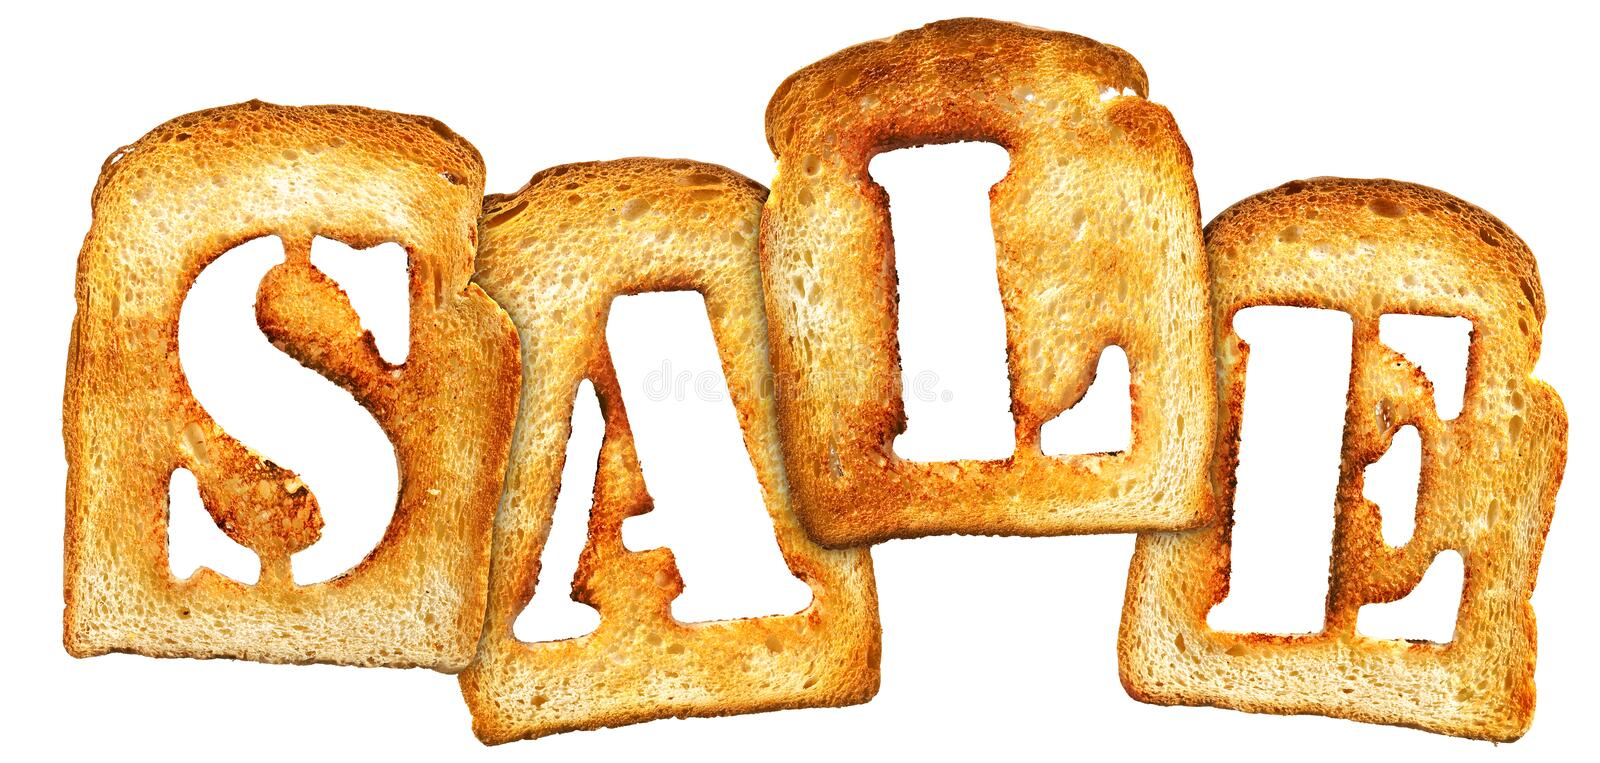 Toast sale. Slices of toast spelling word sale, isolated on white background royalty free stock image